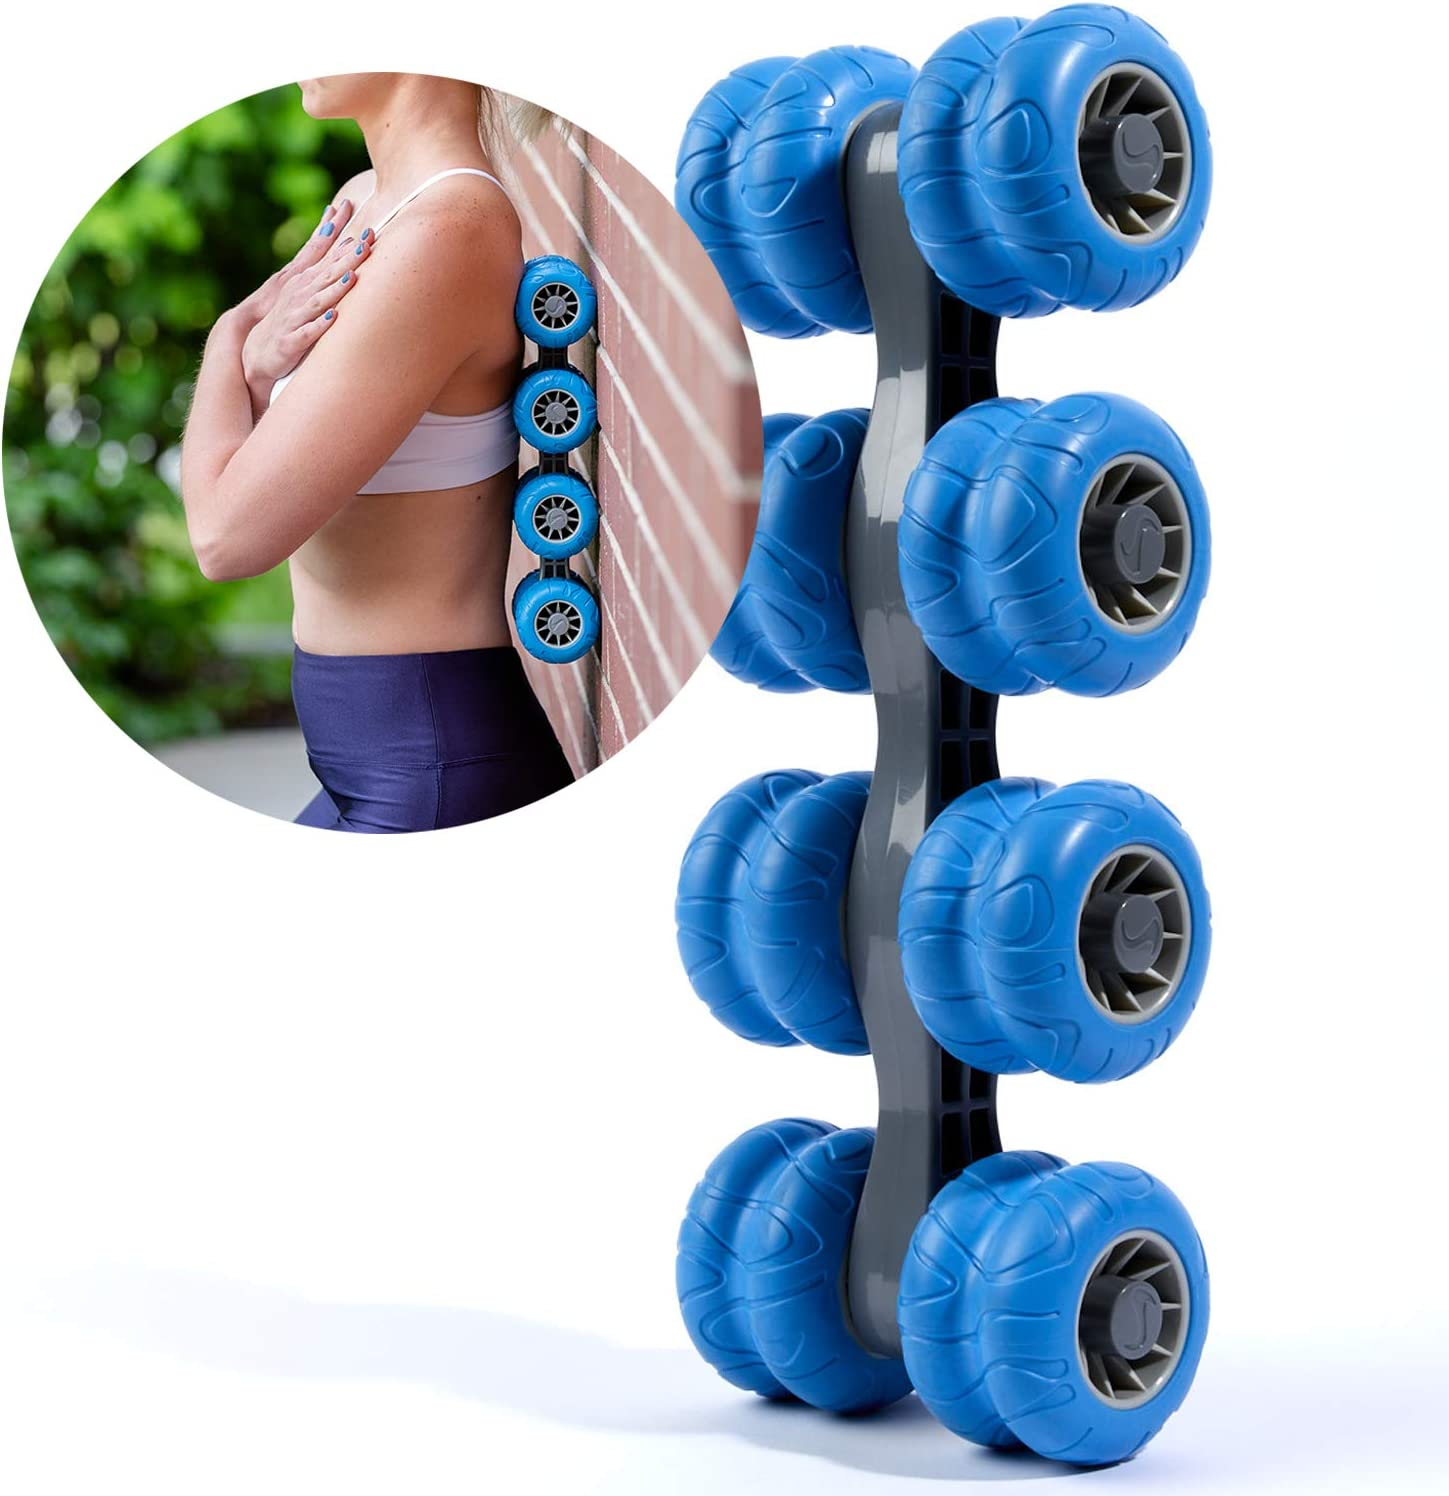 Thorex Back Massage Roller for Deep Tissue Muscle Release, Improves Posture, Upper and Lower Back Pain Relief, for Men & Women, Chiropractor Approved